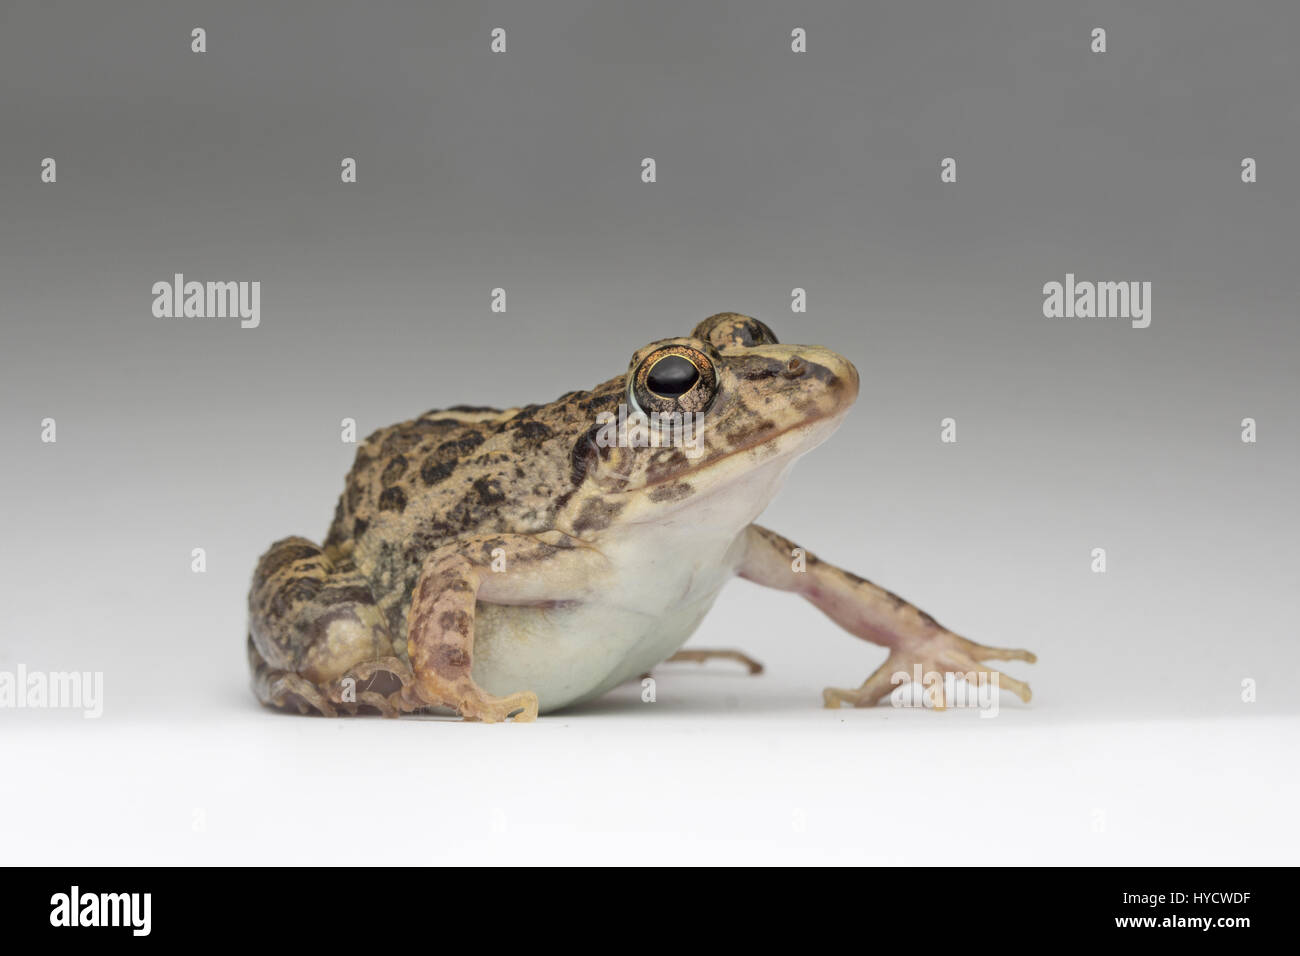 Common Grass Frog - Stock Image